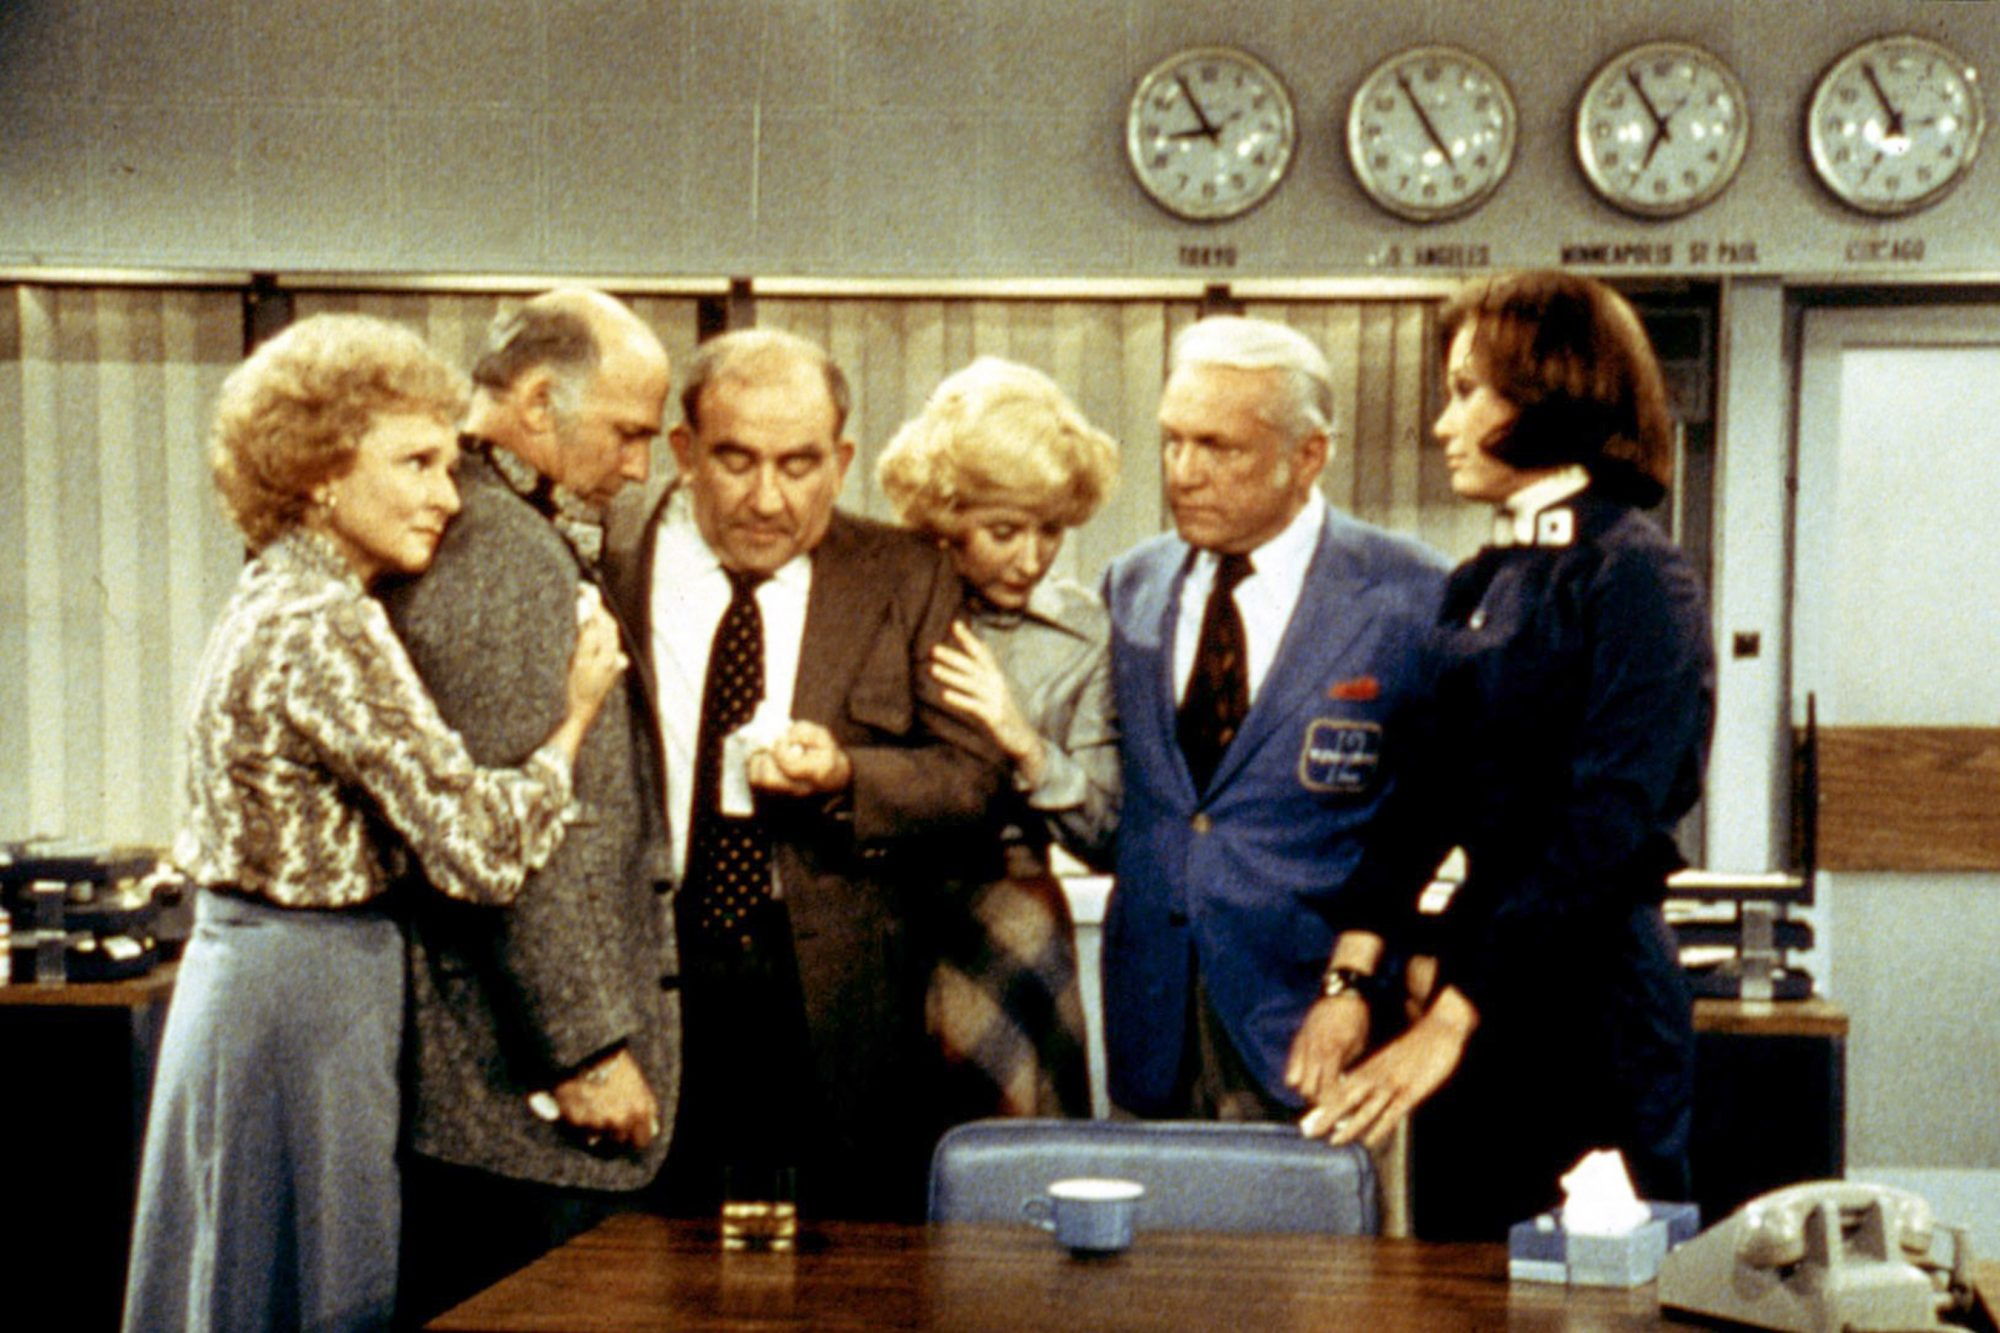 MARY TYLER MOORE SHOW,  Betty White, Gavin MacLeod, Ed Asner, Georgia Engel, Ted Knight, Mary Tyler